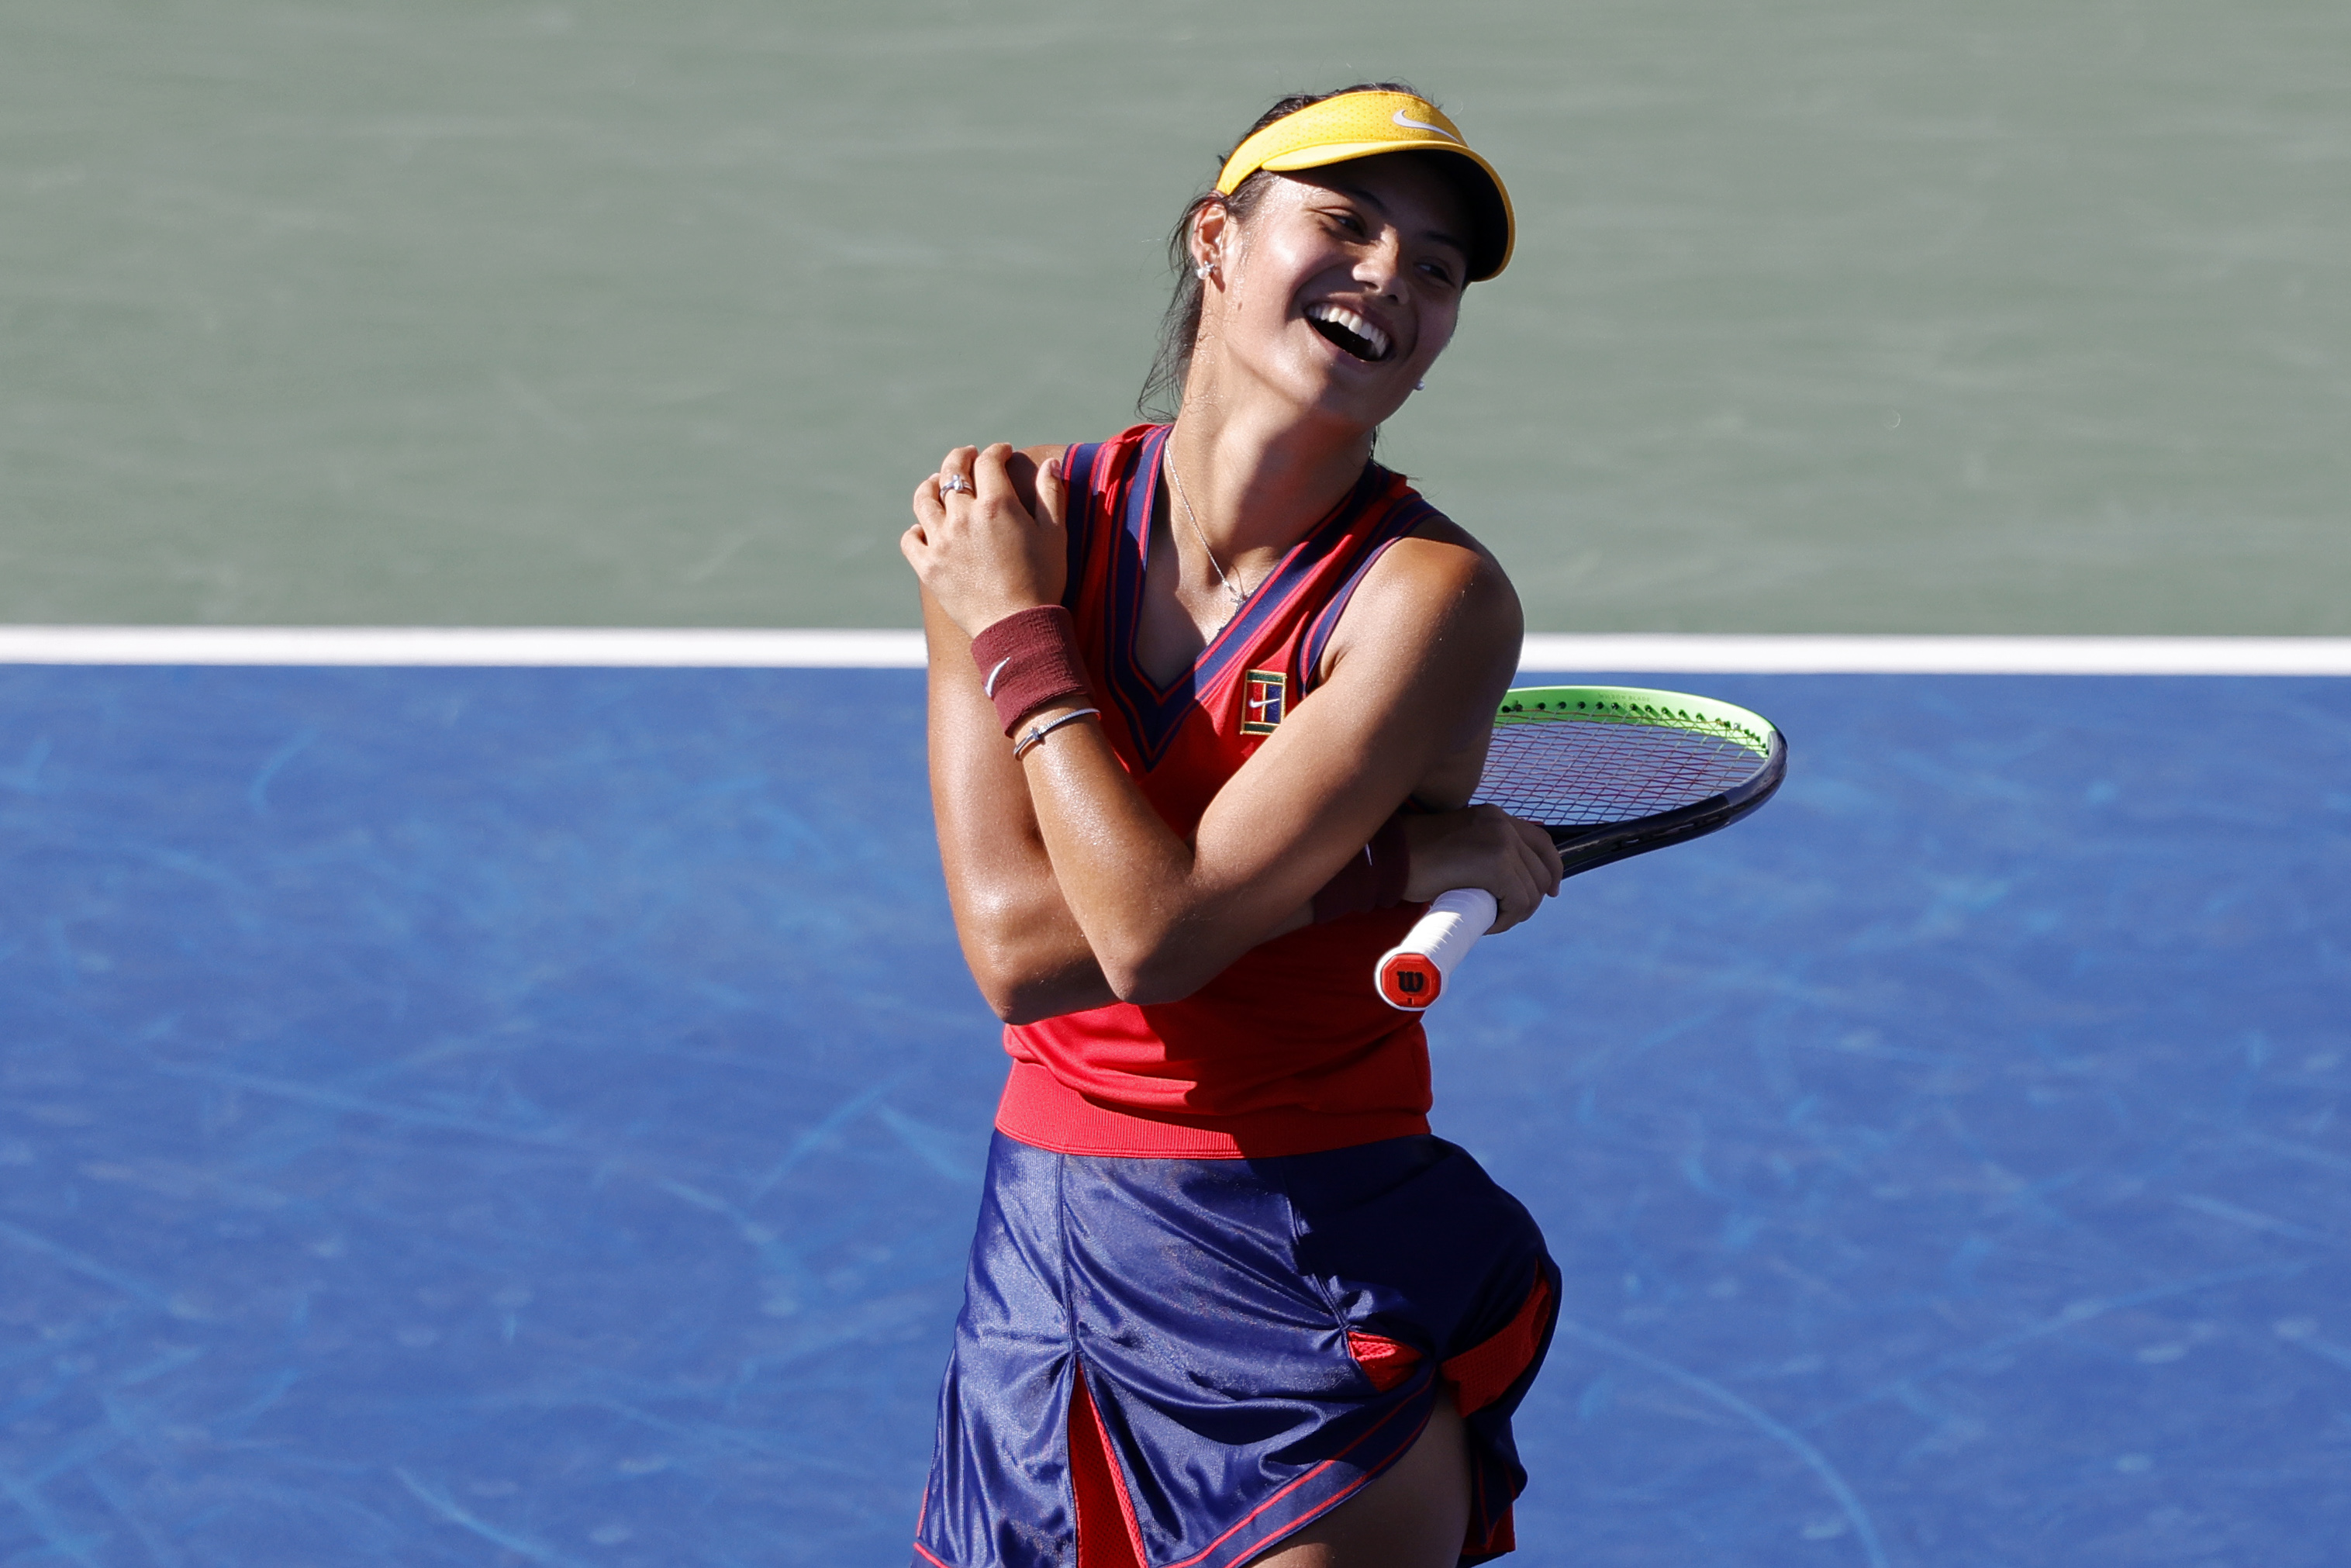 Sep 4, 2021; Flushing, NY, USA; Emma Raducanu of Great Britain celebrates against Sara Sorribes Tormo of Spain (not pictured) on day six of the 2021 U.S. Open tennis tournament at USTA Billie Jean King National Tennis Center. Mandatory Credit: Geoff Burke-USA TODAY Sports